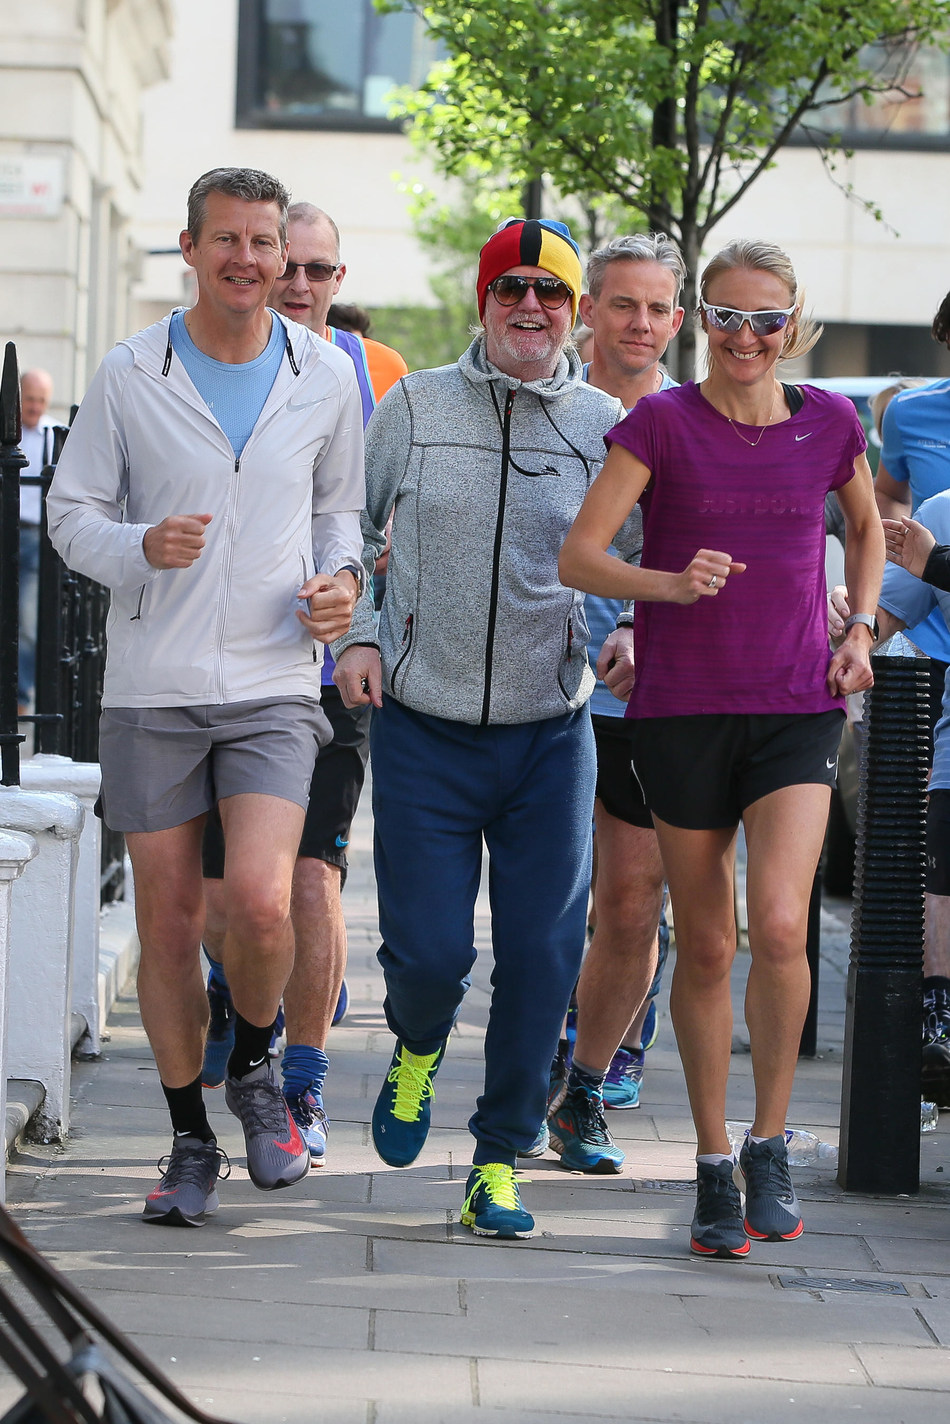 Chris Evans and some of his RunFestRun ambassadors, Steve Cram and Paula Radcliffe